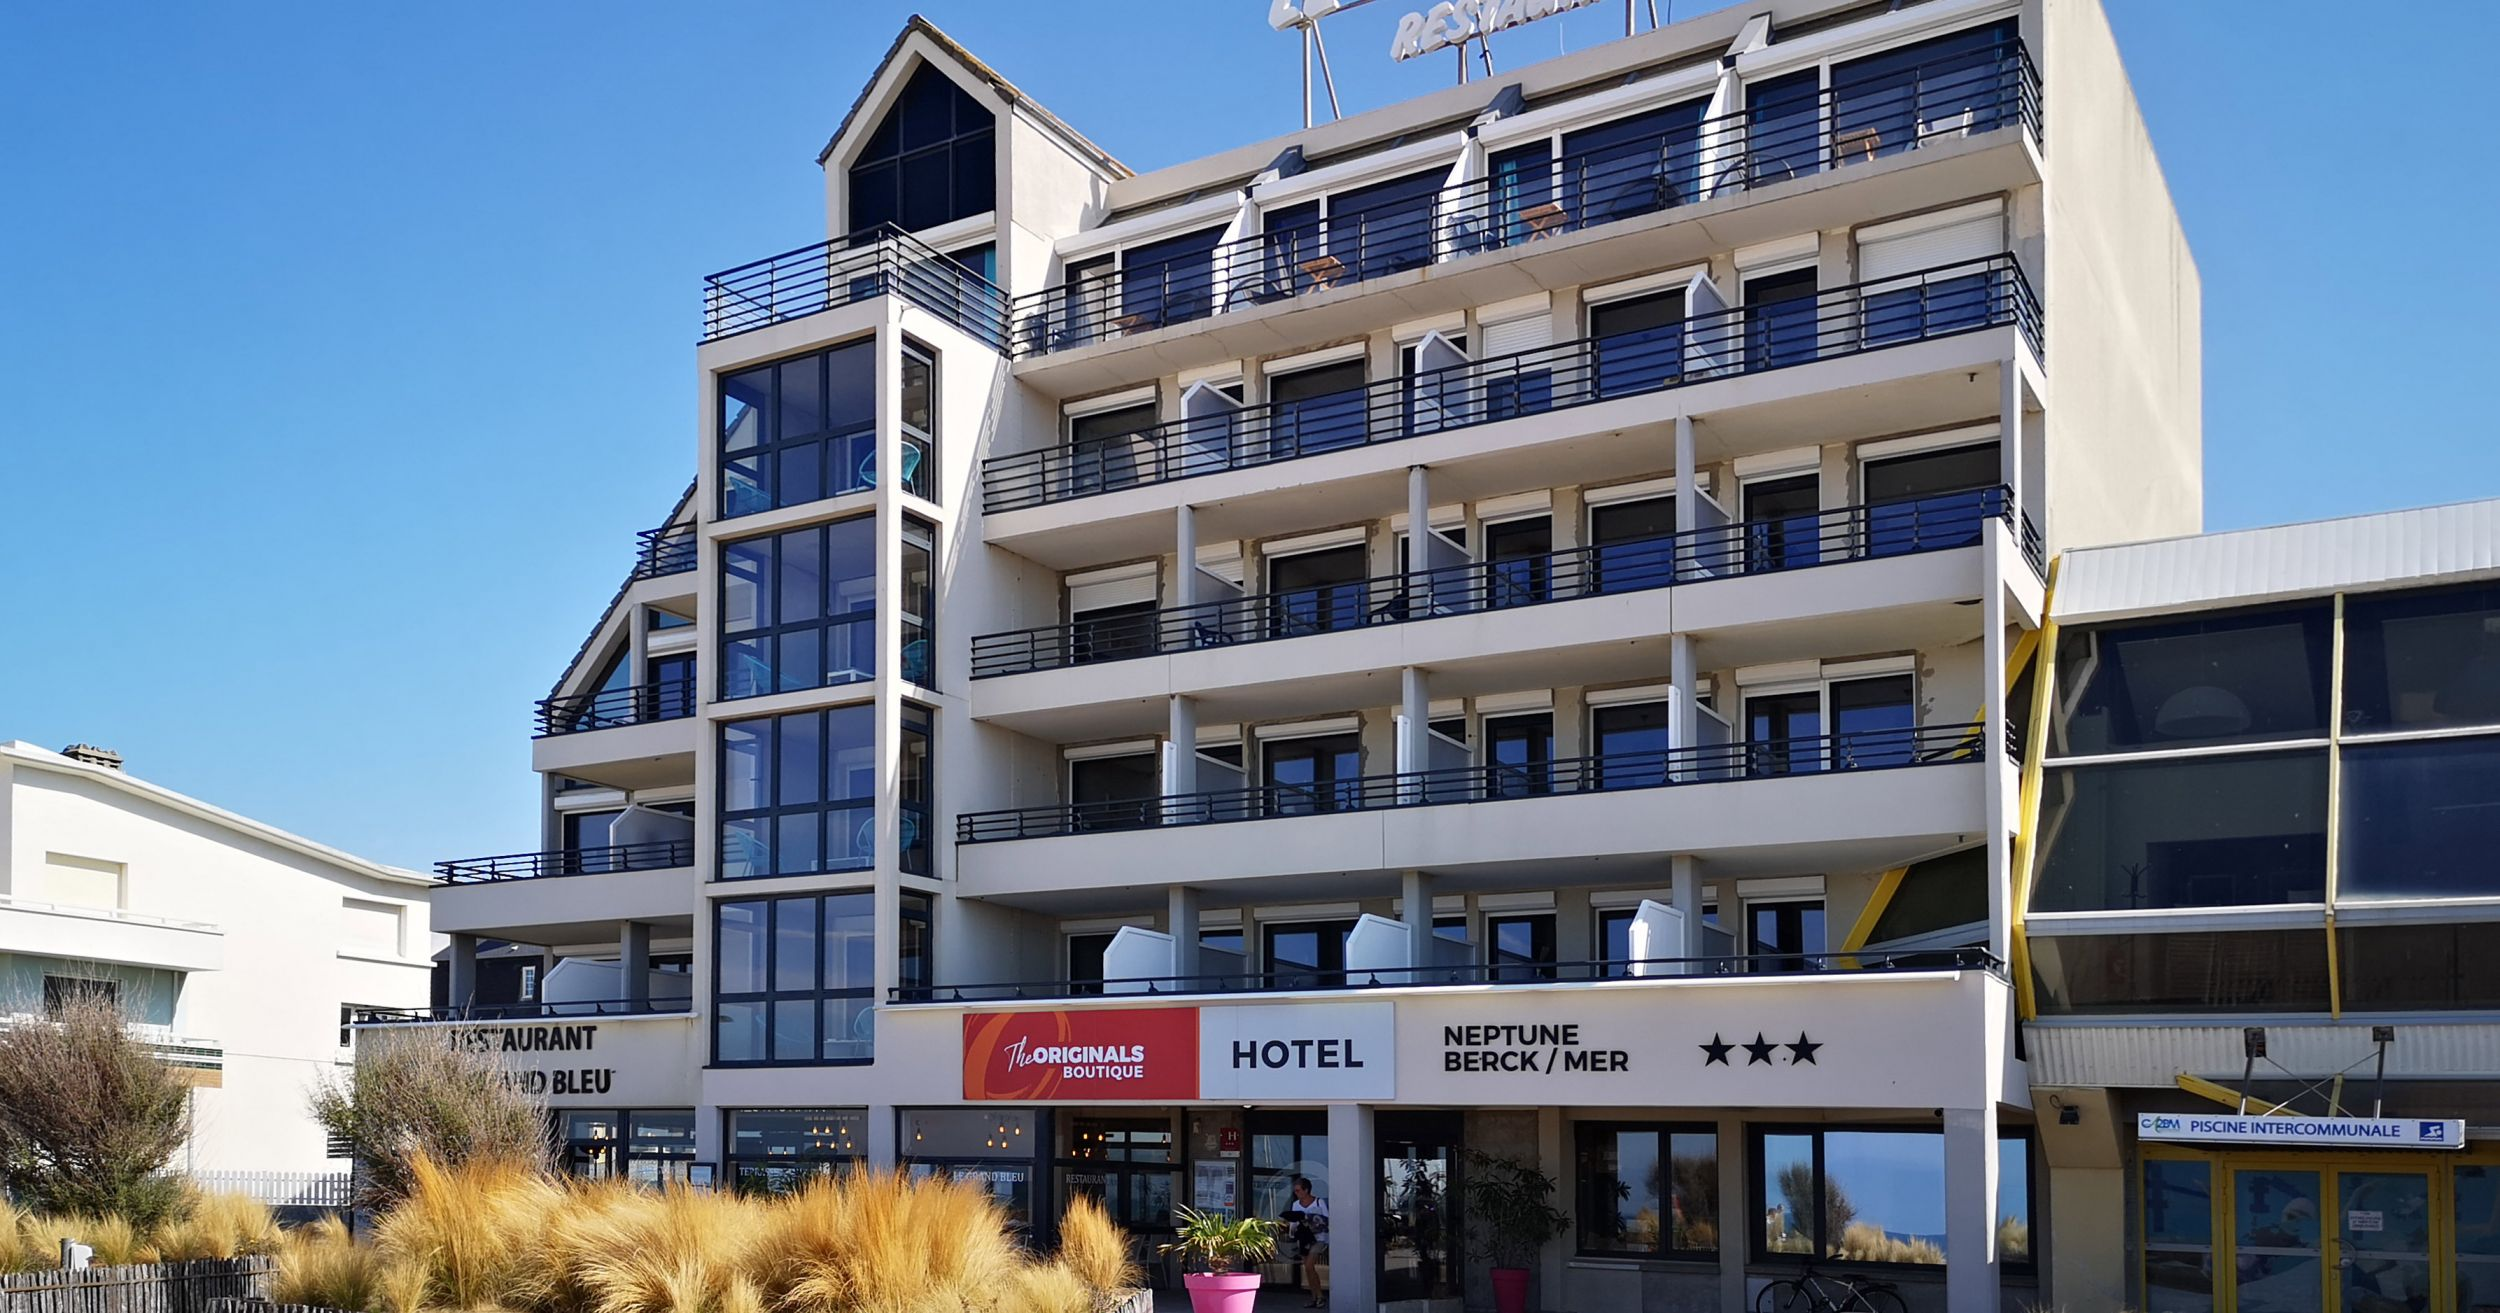 Sea Front Hotel In Berck Sur Mer Facing The Beach Hotel Neptune Official Site